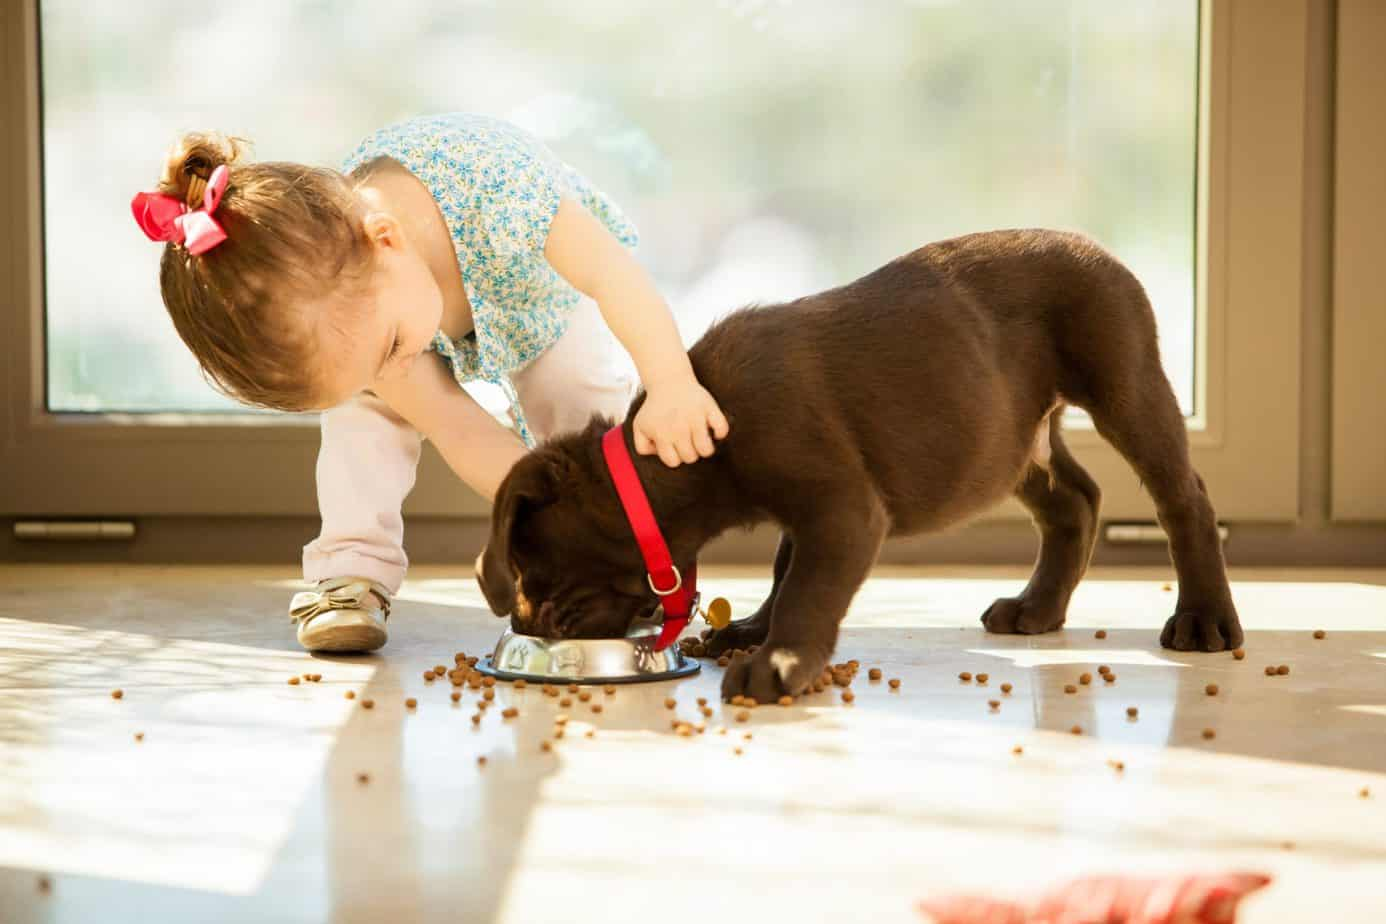 Little girl helps feed labrador puppy. Taking care of an animal is no easy task, especially for a young kid. That's why parents should teach kids to do the work and show them that owning a dog is a daily commitment.